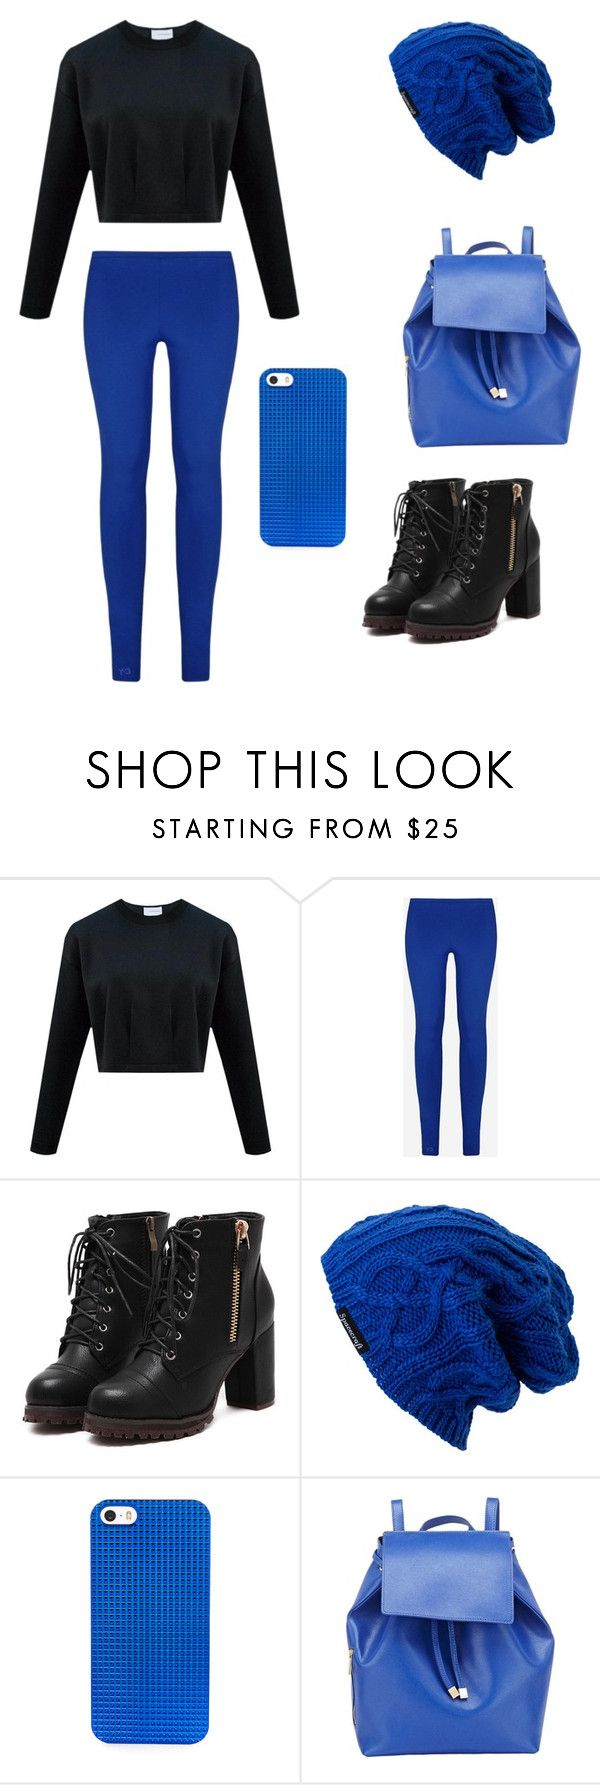 """The perfect combination."" by kayandzay on Polyvore featuring Y-3, Spacecraft, BaubleBar and Barneys New York"